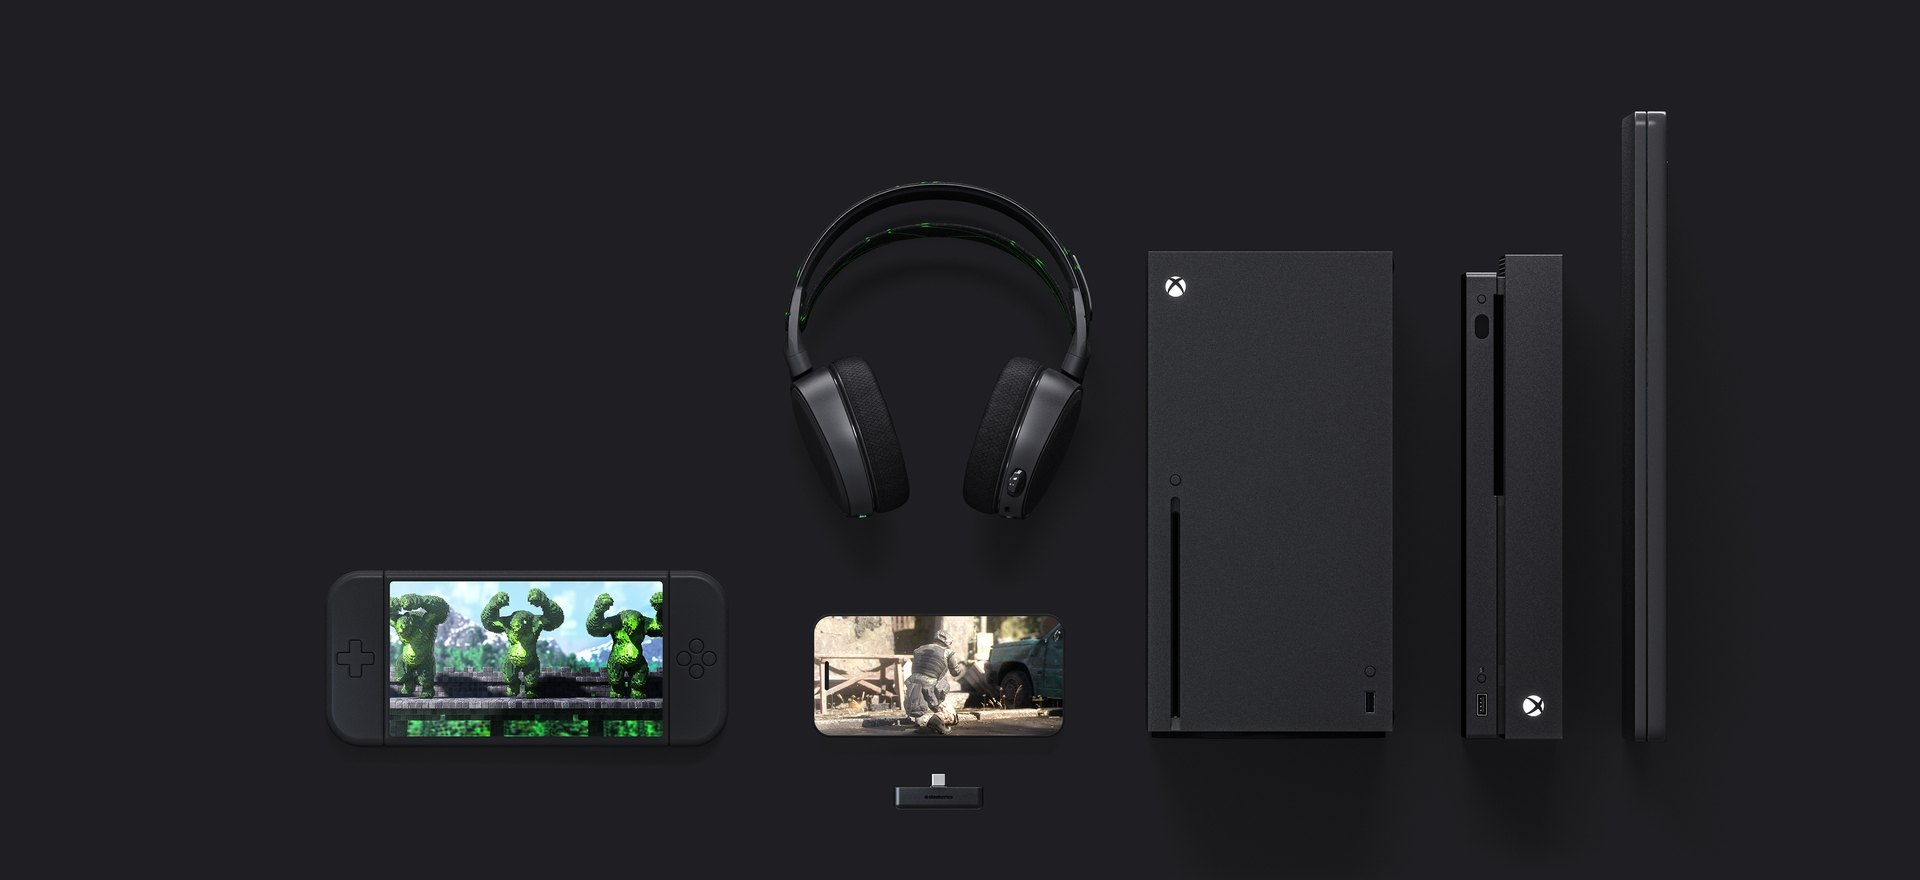 Android, iphone, xbox one, xbox series x, and PC all showing connectivity to headset